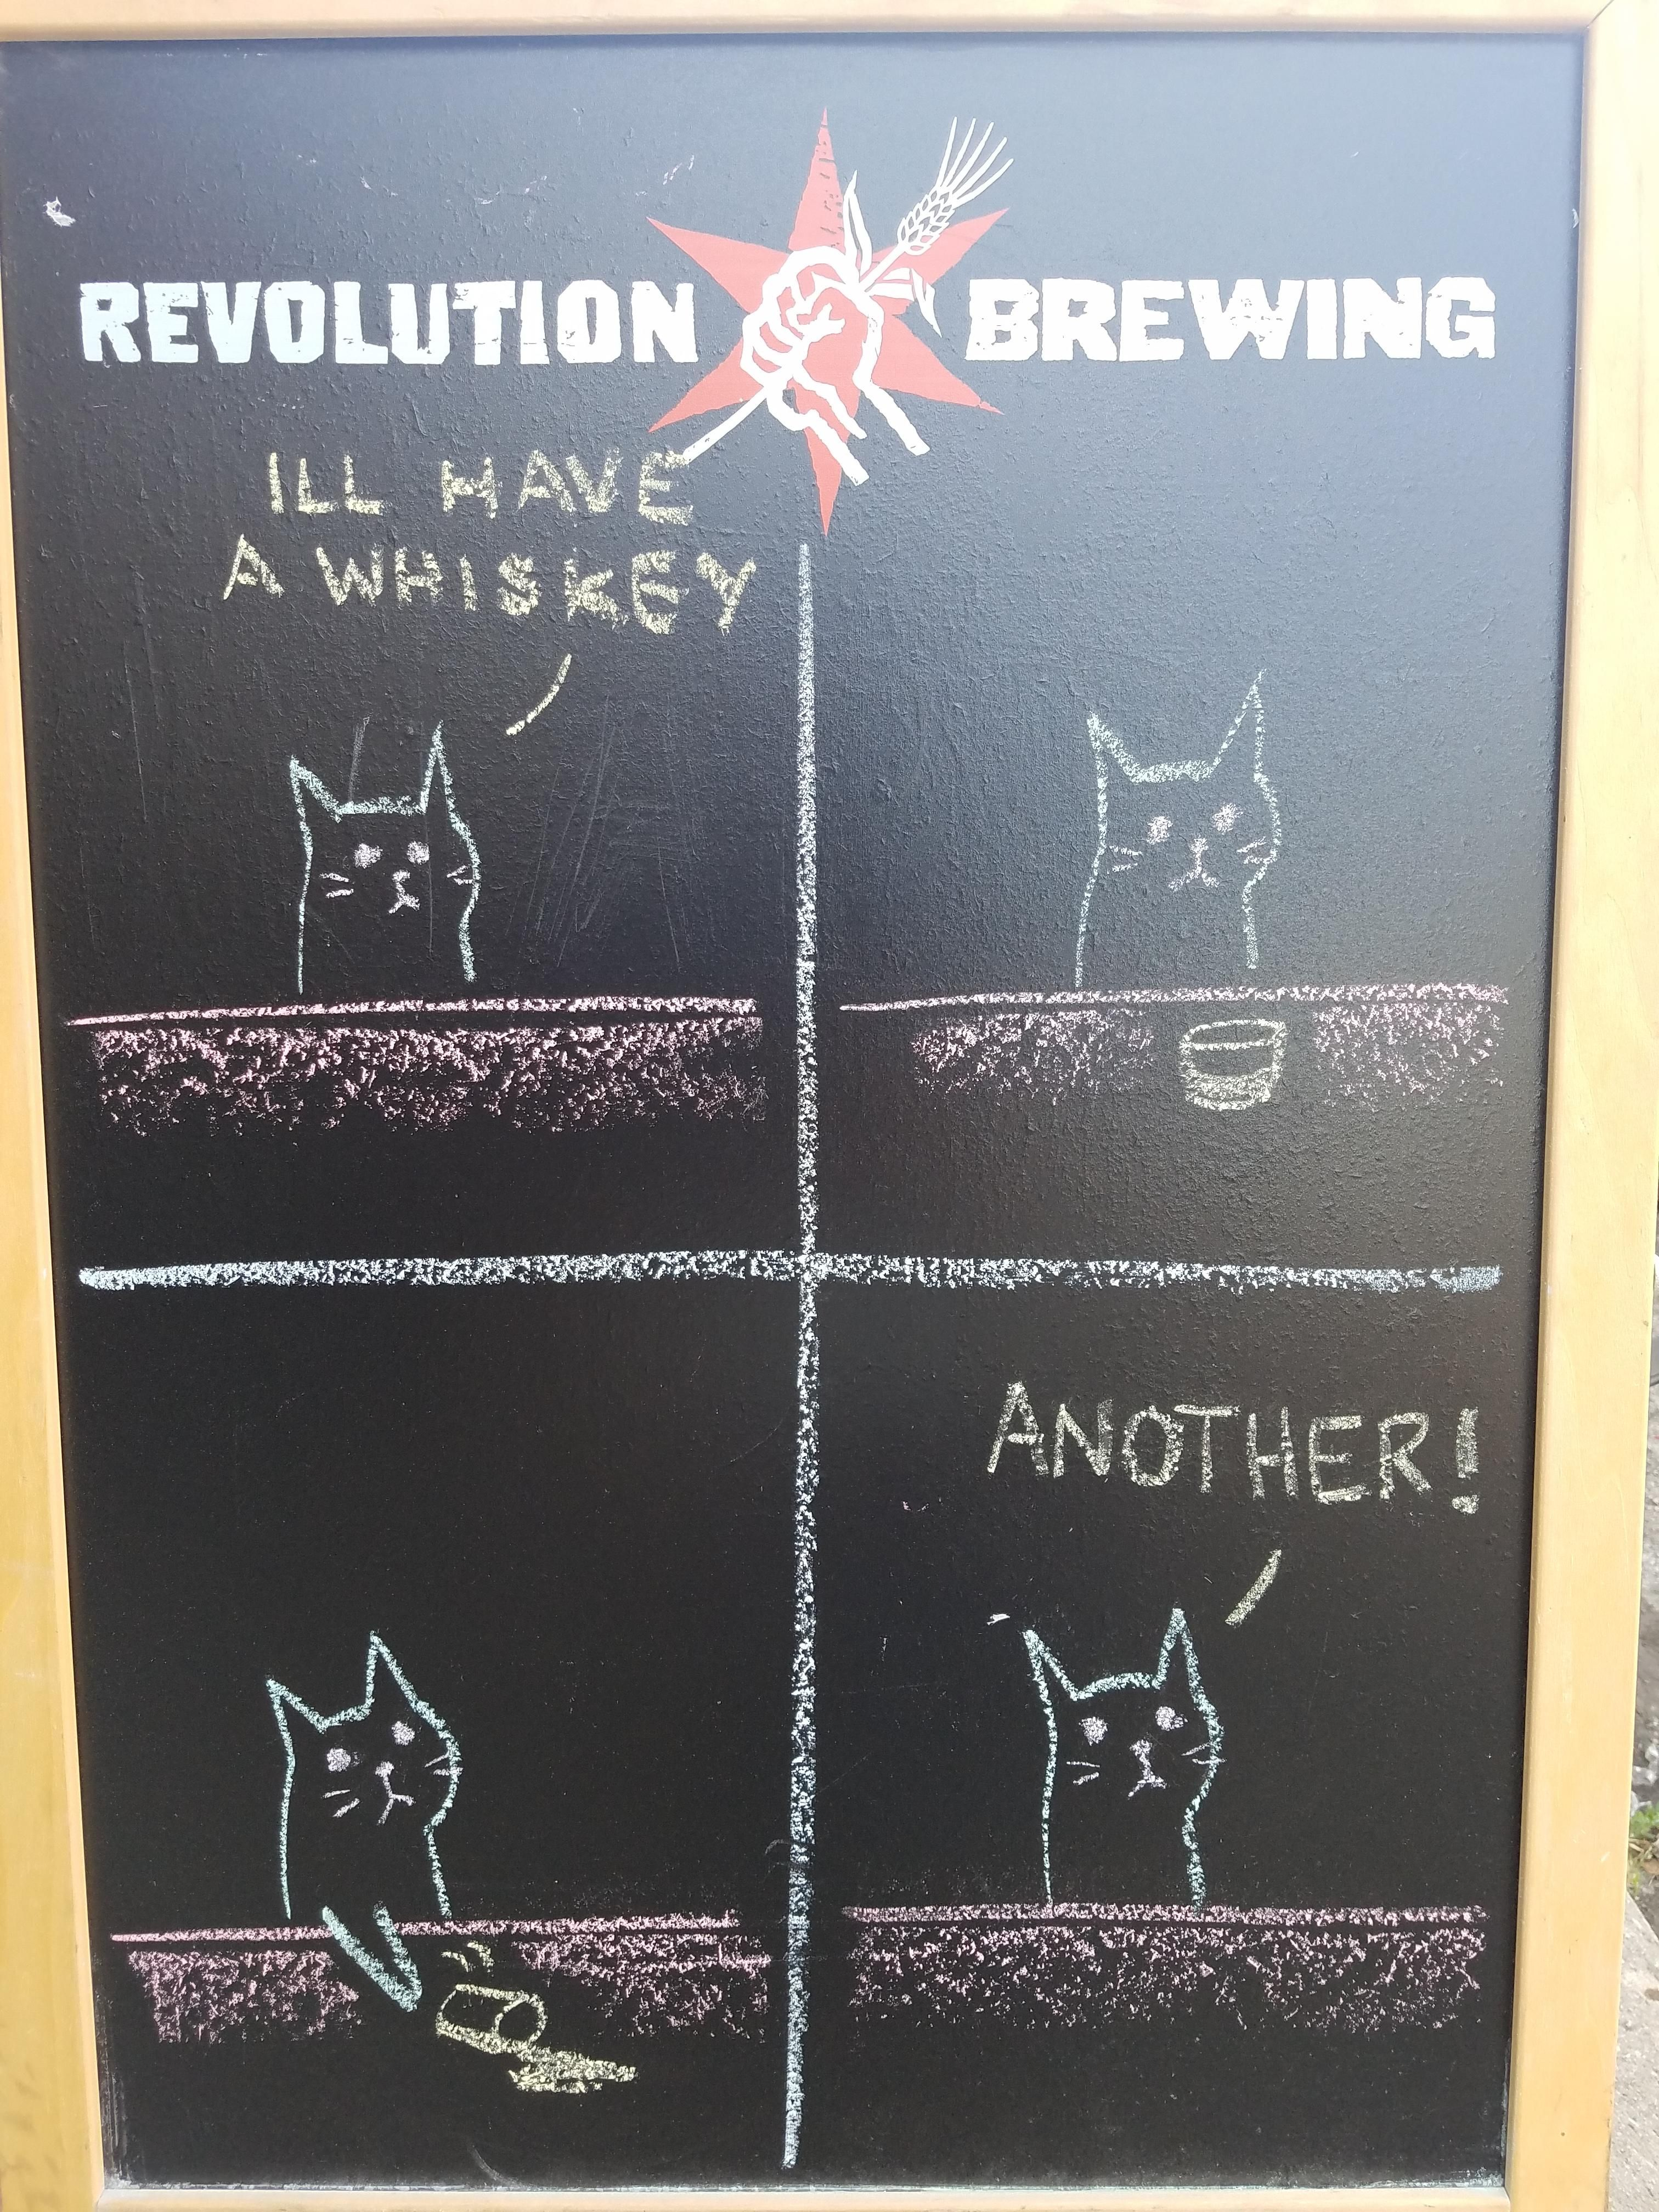 This bar obviously owns a cat